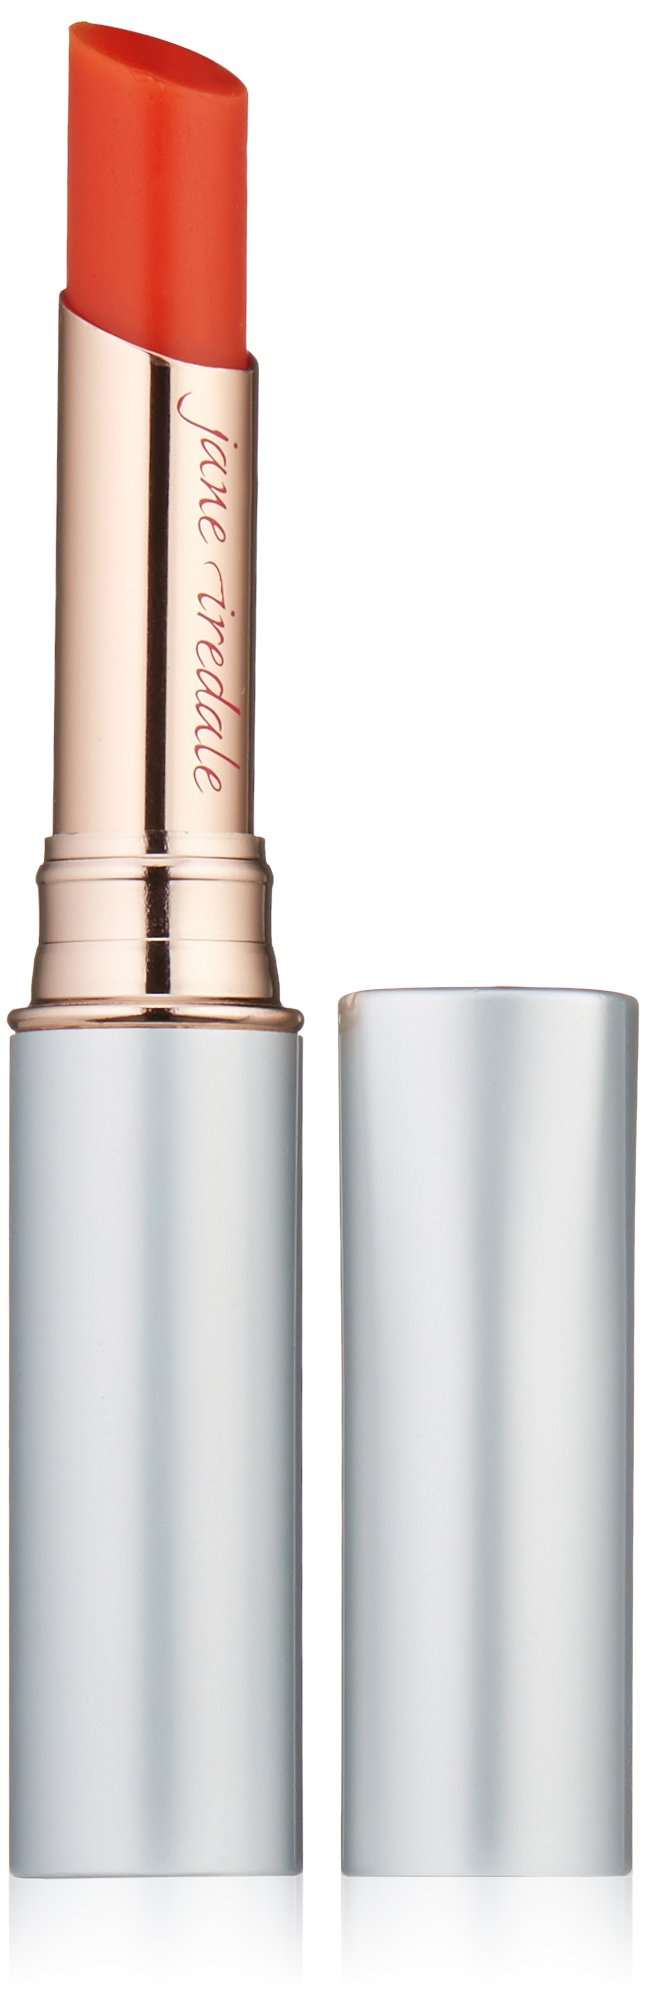 jane iredale Just Kissed Lip and Cheek Stain, Forever Red, 0.100 oz.